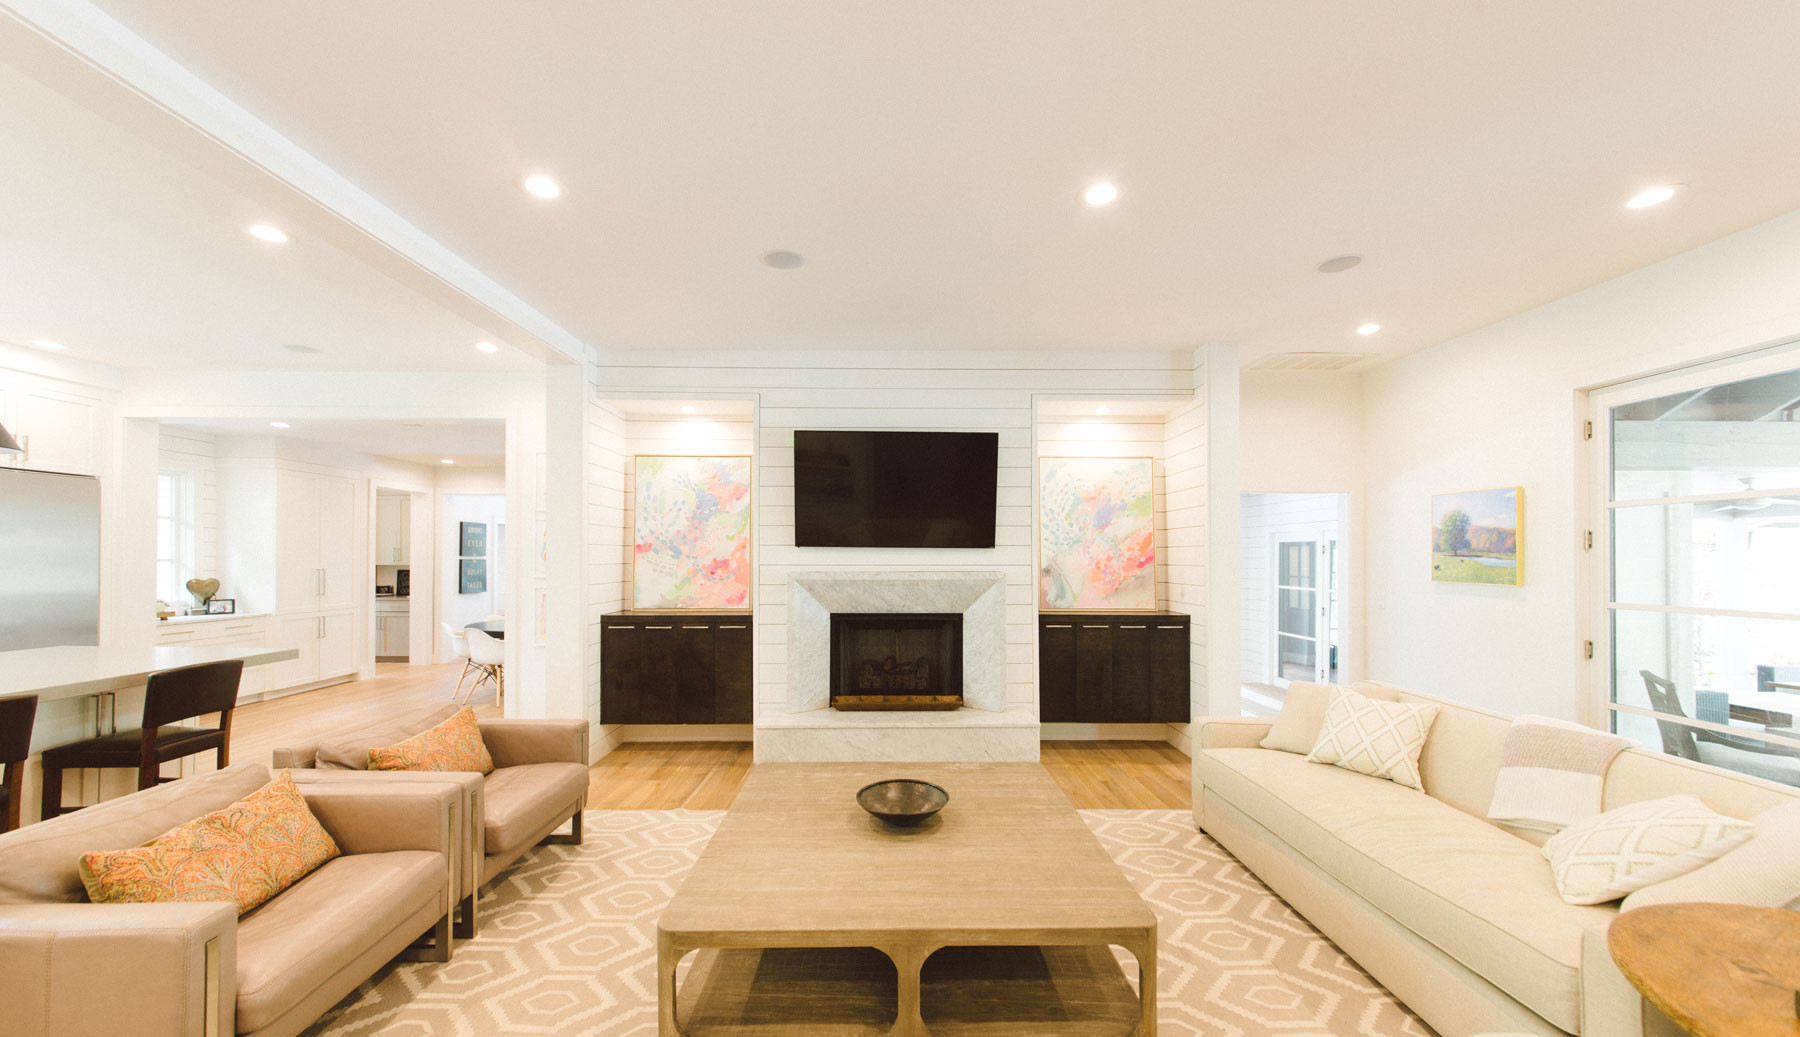 Best ideas about Living Room Remodel . Save or Pin Living Room Remodels in the Tulsa Area Now.